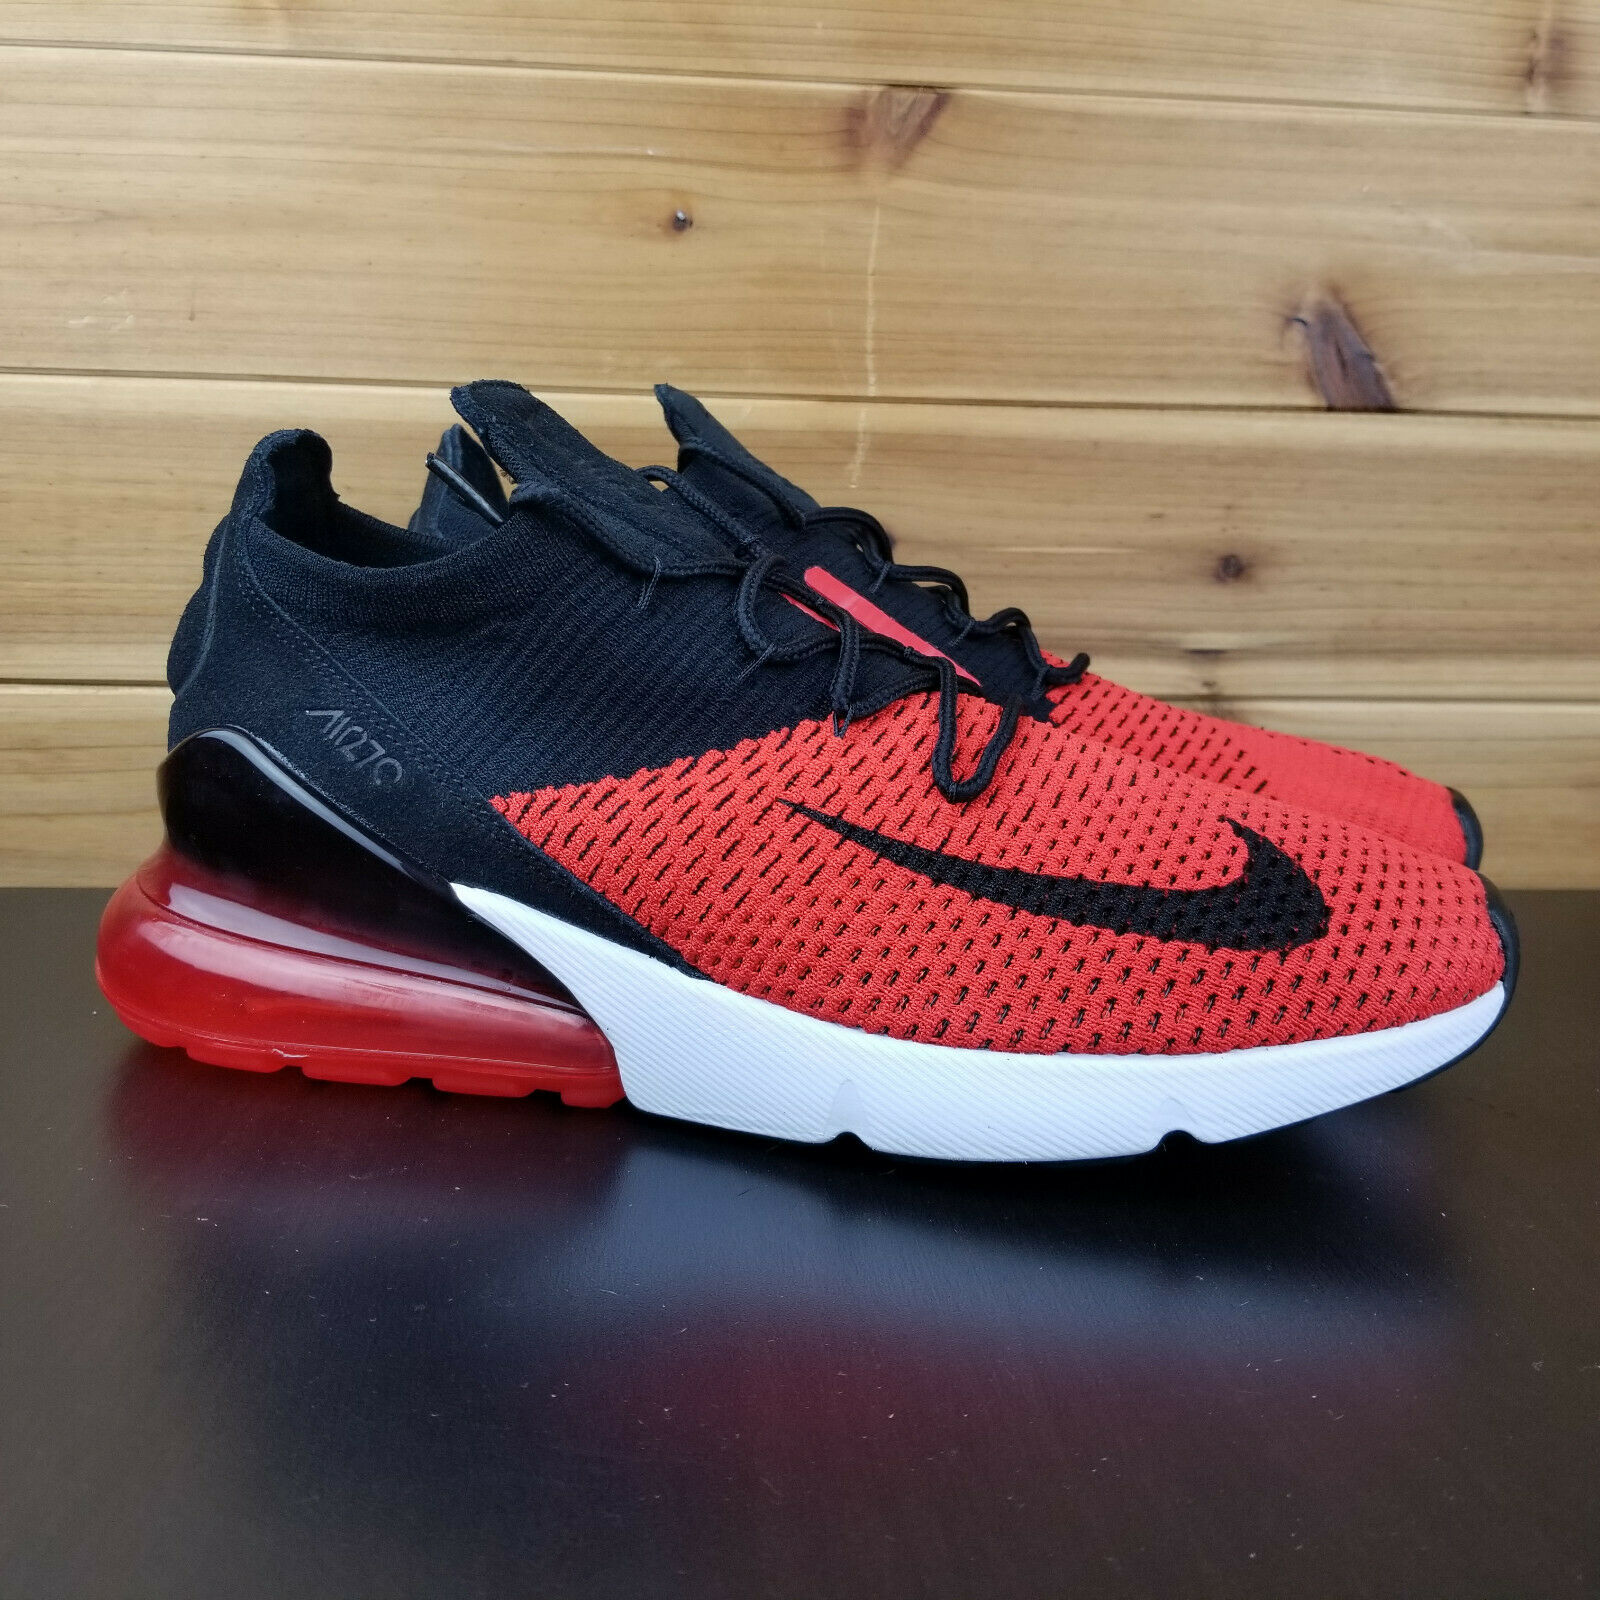 Nike Air Max 270 Flyknit Men's shoes Sz 9 Red Black White Running AO1023-601